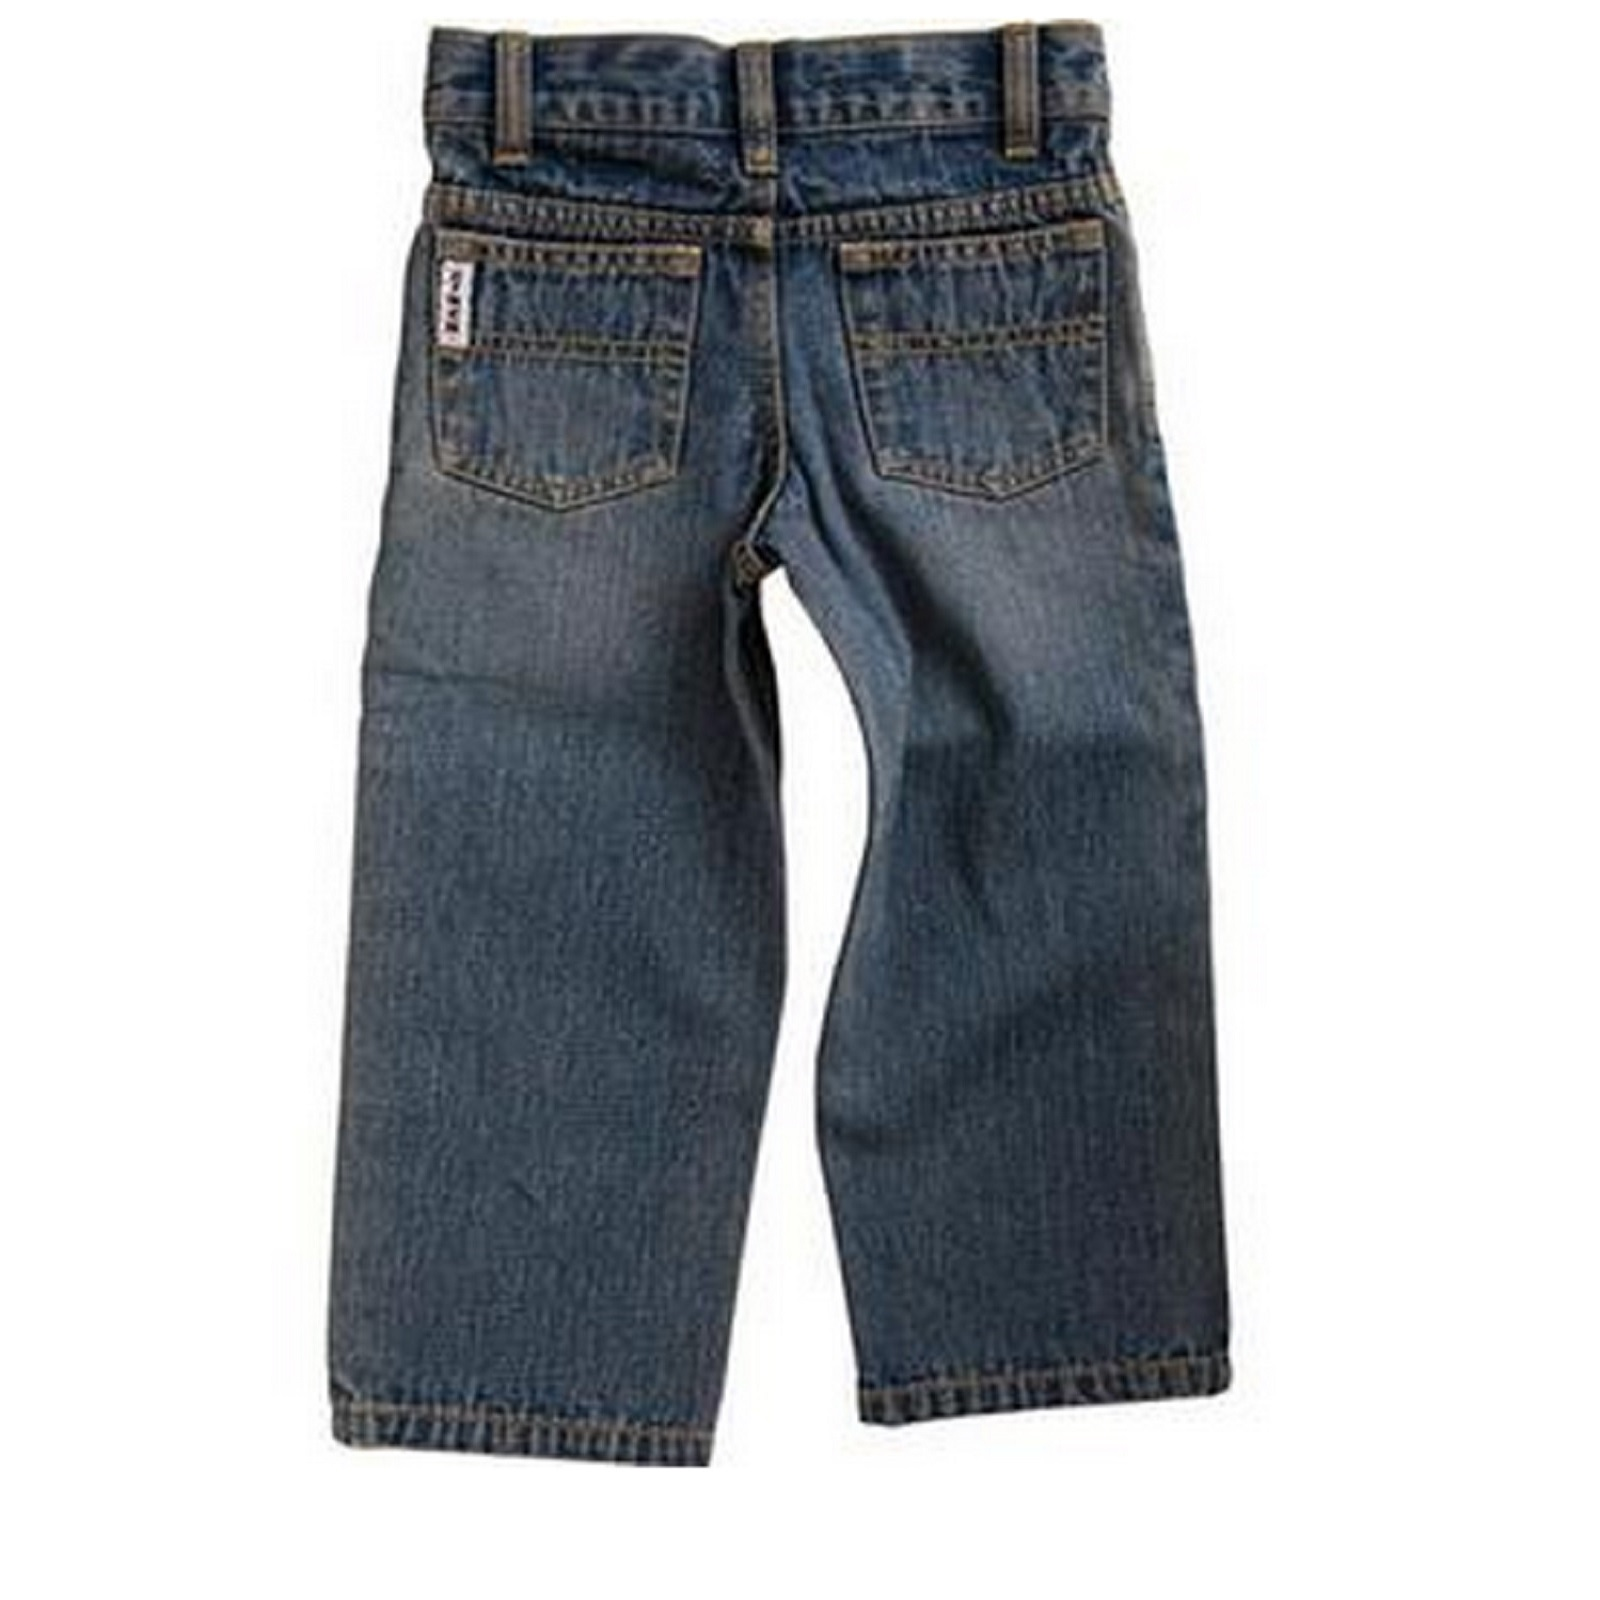 > Apparel > Infant & Toddlers. We have a variety of toddler and infant clothing that is sure to satisfy your little and yourself all at the same time. See what Fort Brands has to offer here! Cinch® Boys' Toddler Bucking Tee. $ In Stock. Quick view # Wrangler® Boys' Preschool Jean. $ In Stock.